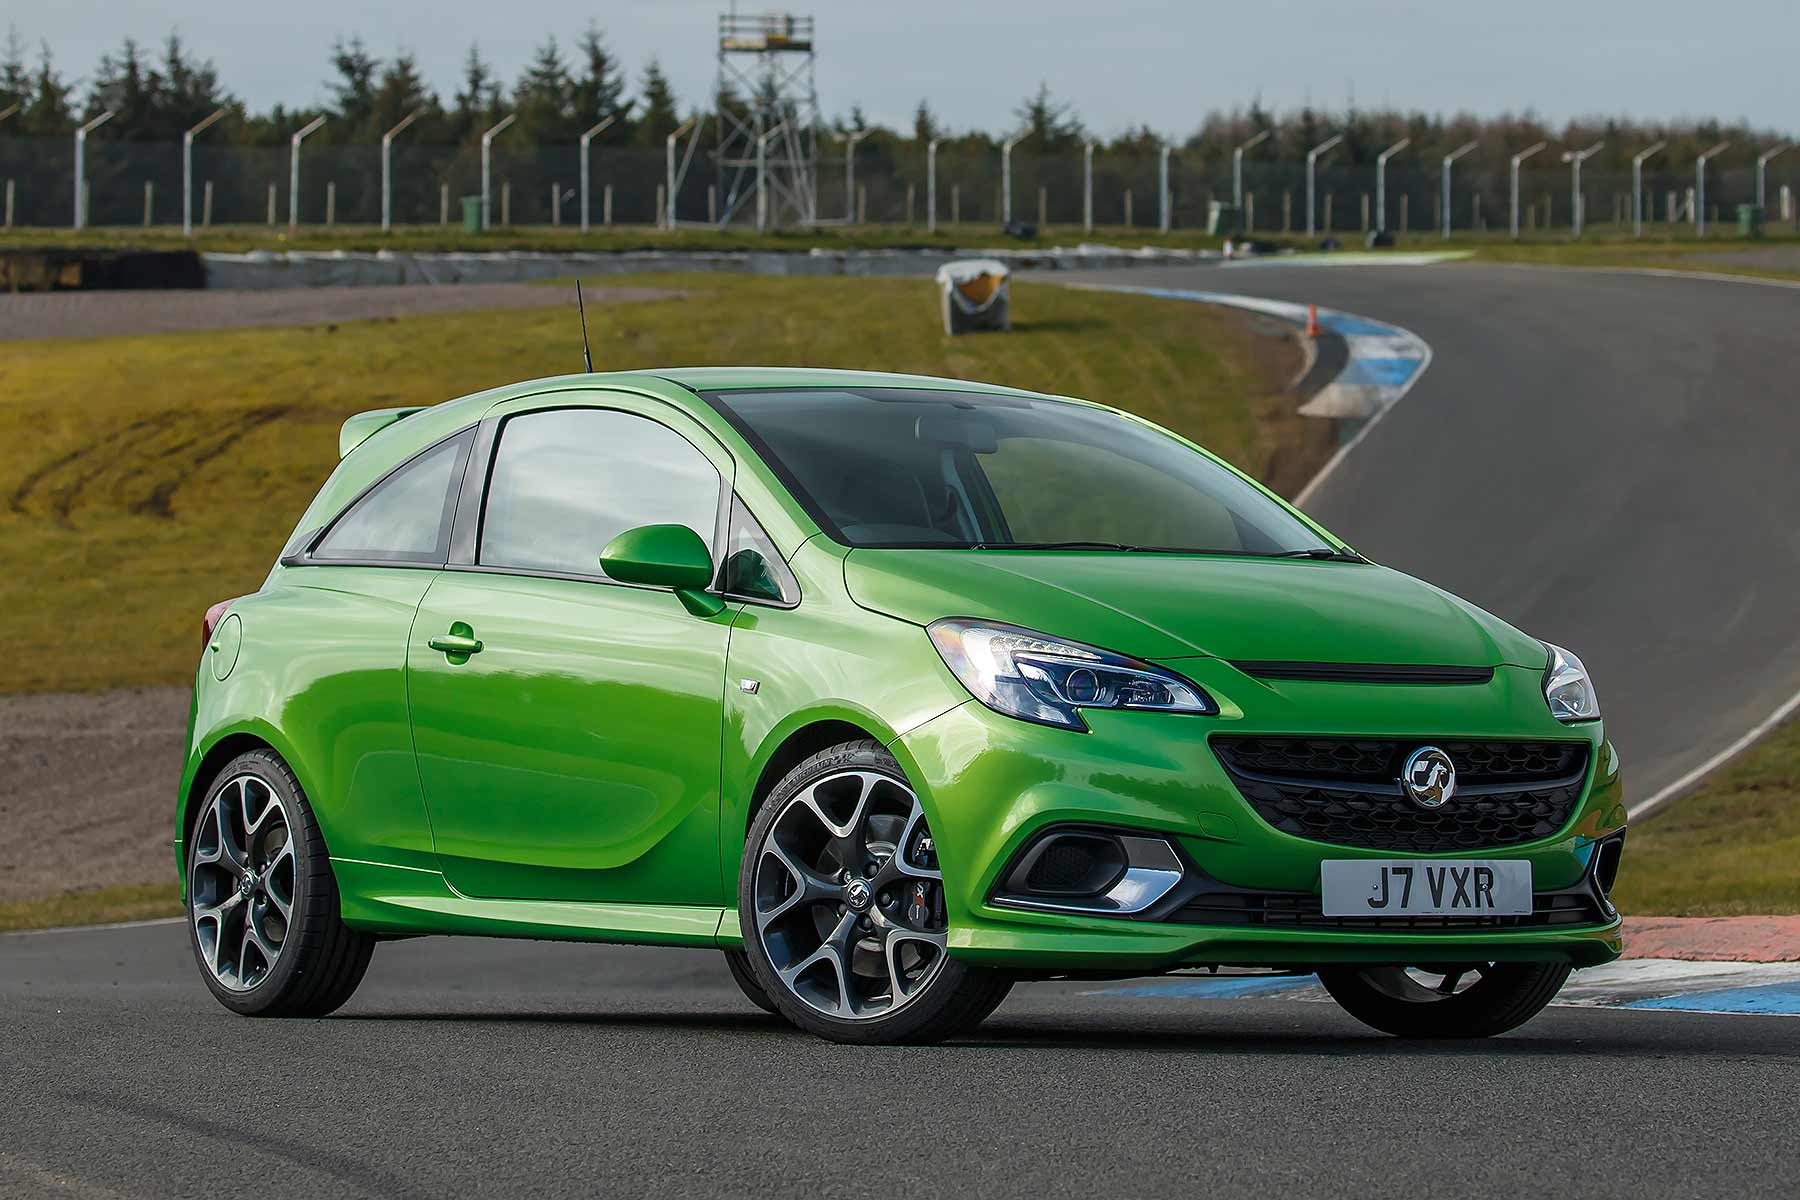 vauxhall corsa vxr performance pack review 2015 first drive motoring research. Black Bedroom Furniture Sets. Home Design Ideas